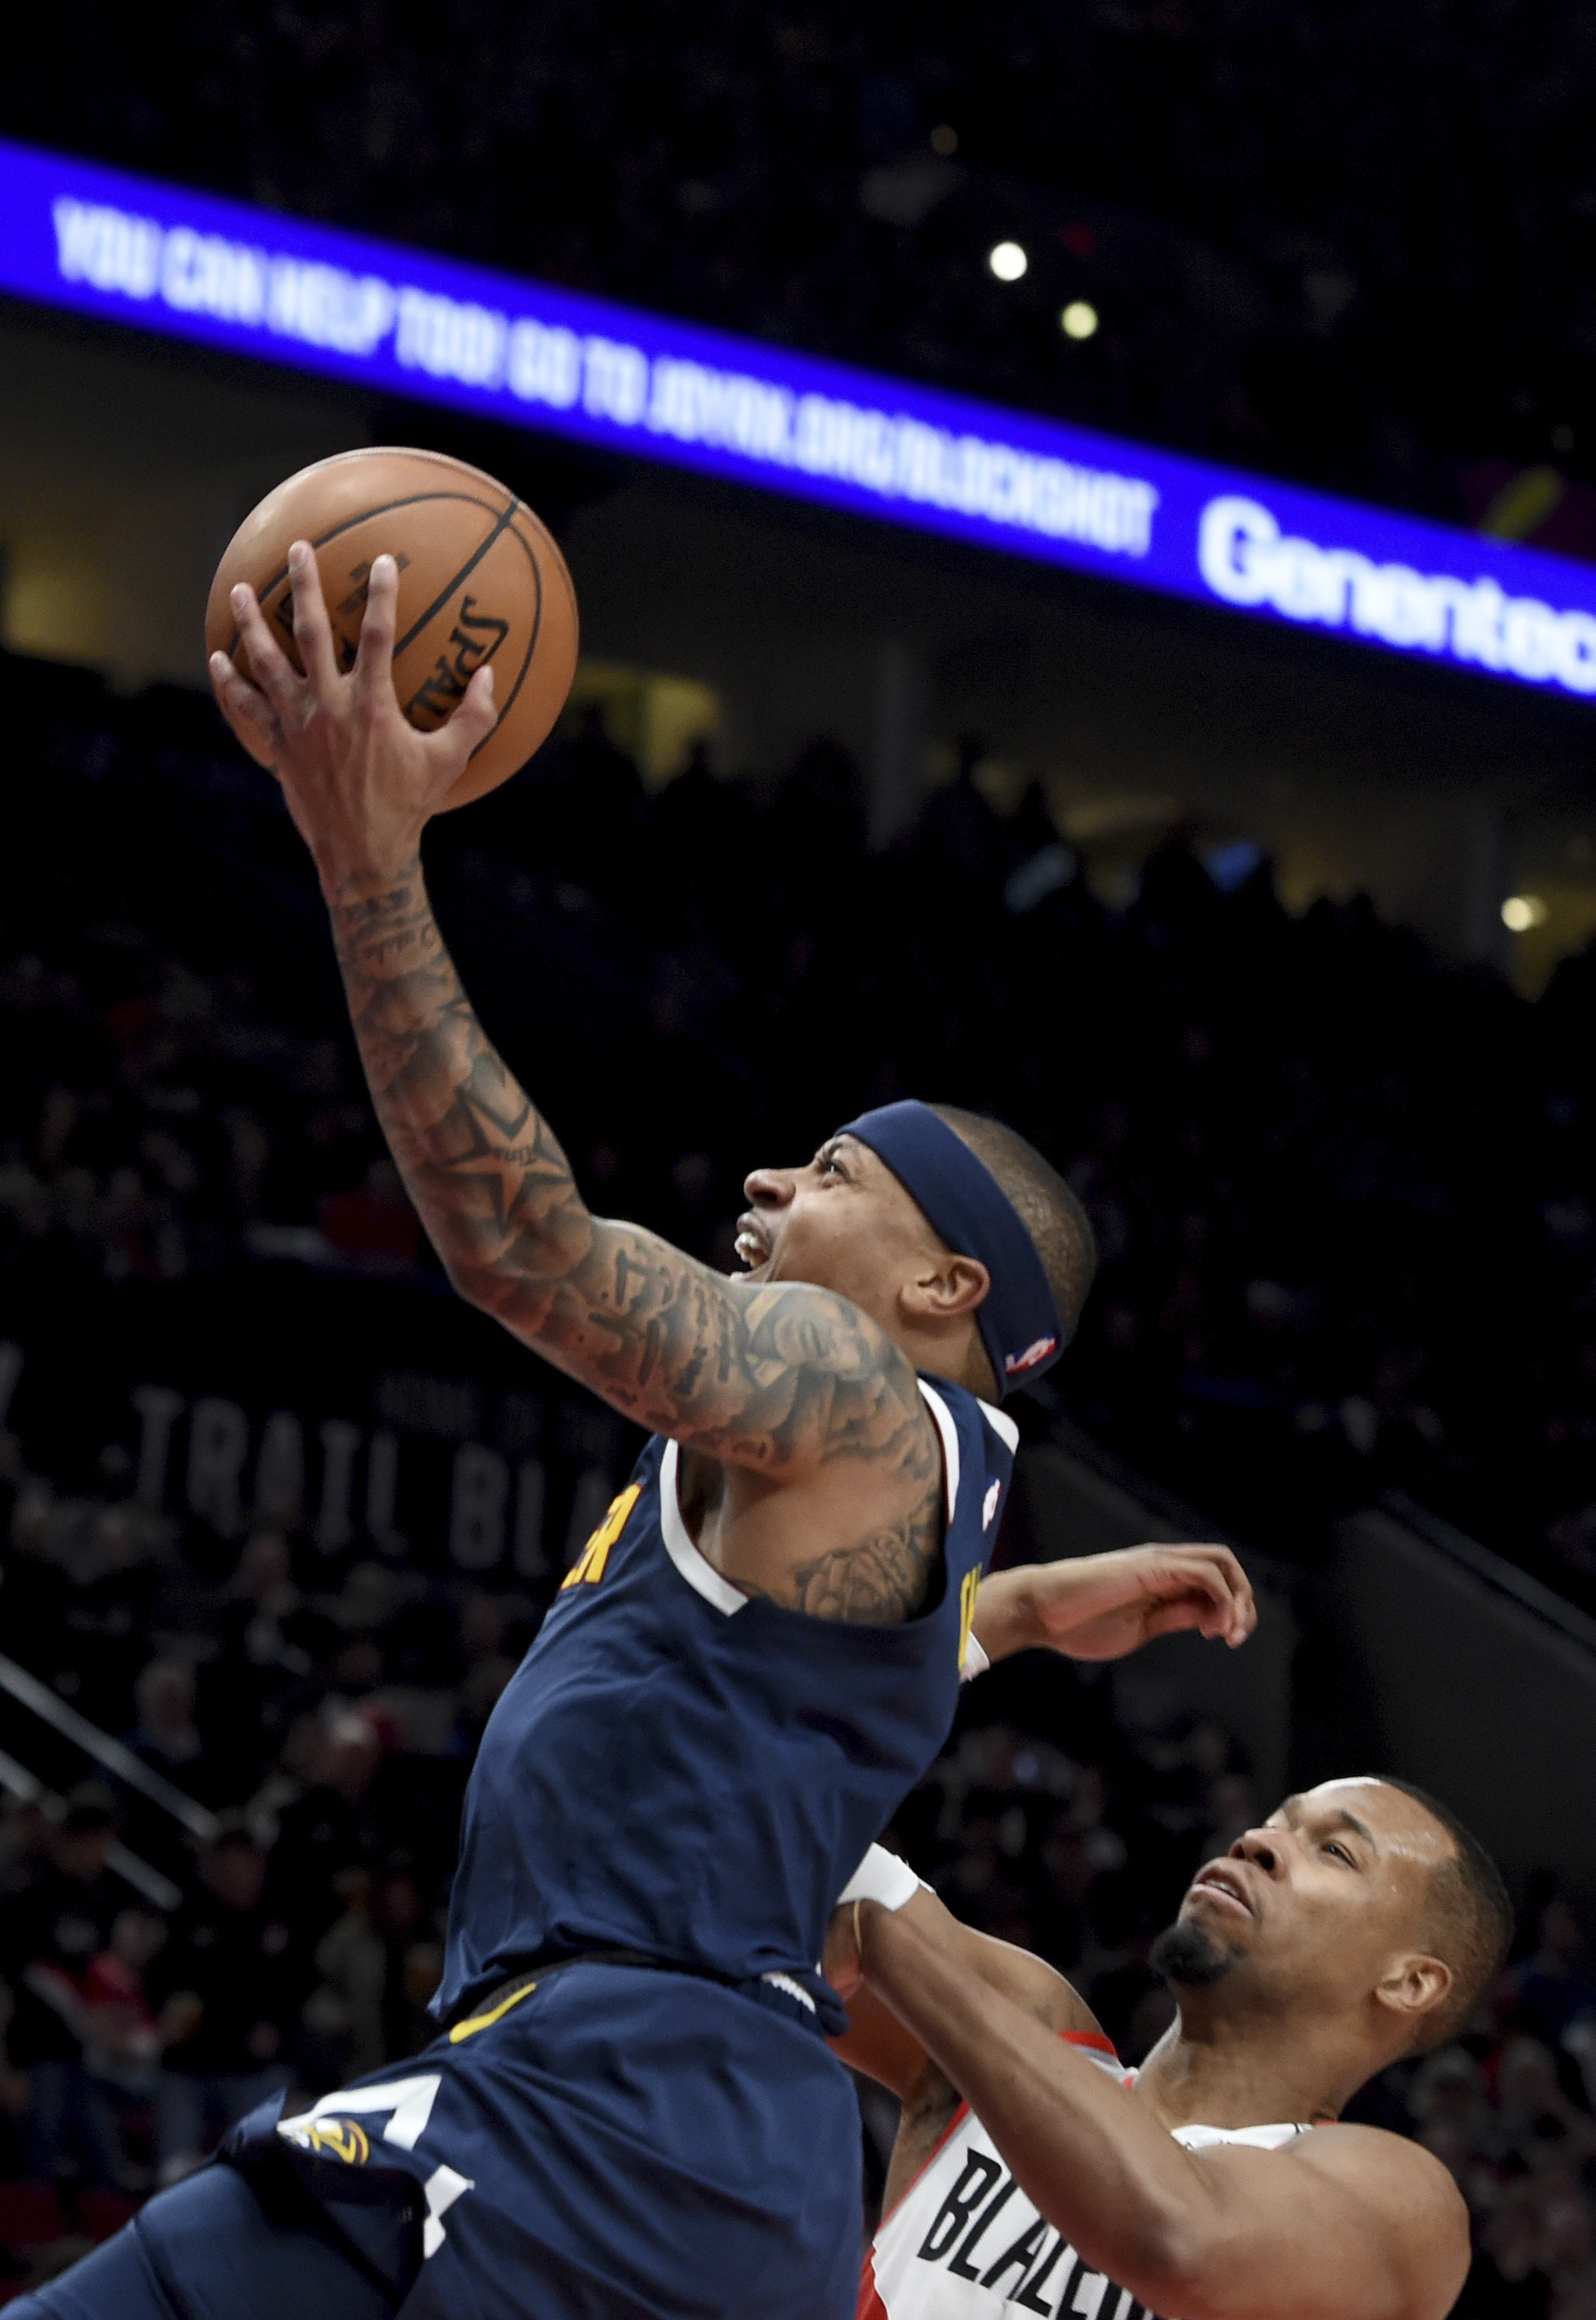 newest 960c8 7a034 Denver Nuggets guard Isaiah Thomas (left) drives to the basket on Portland  Trail Blazers guard Rodney Hood (right) during the first half of an NBA ...